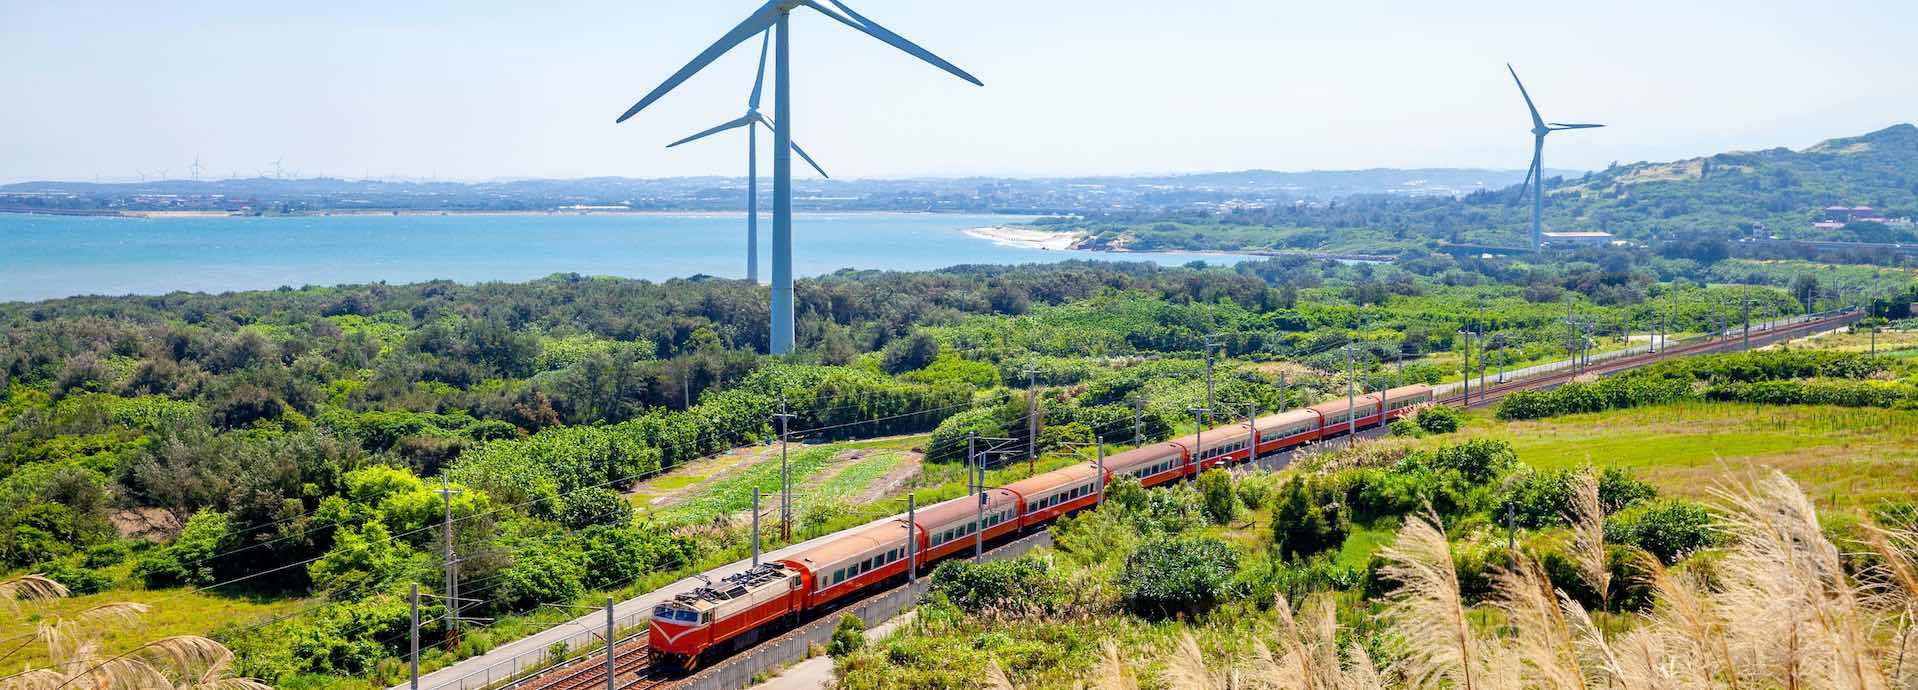 Train passing before wind turbines